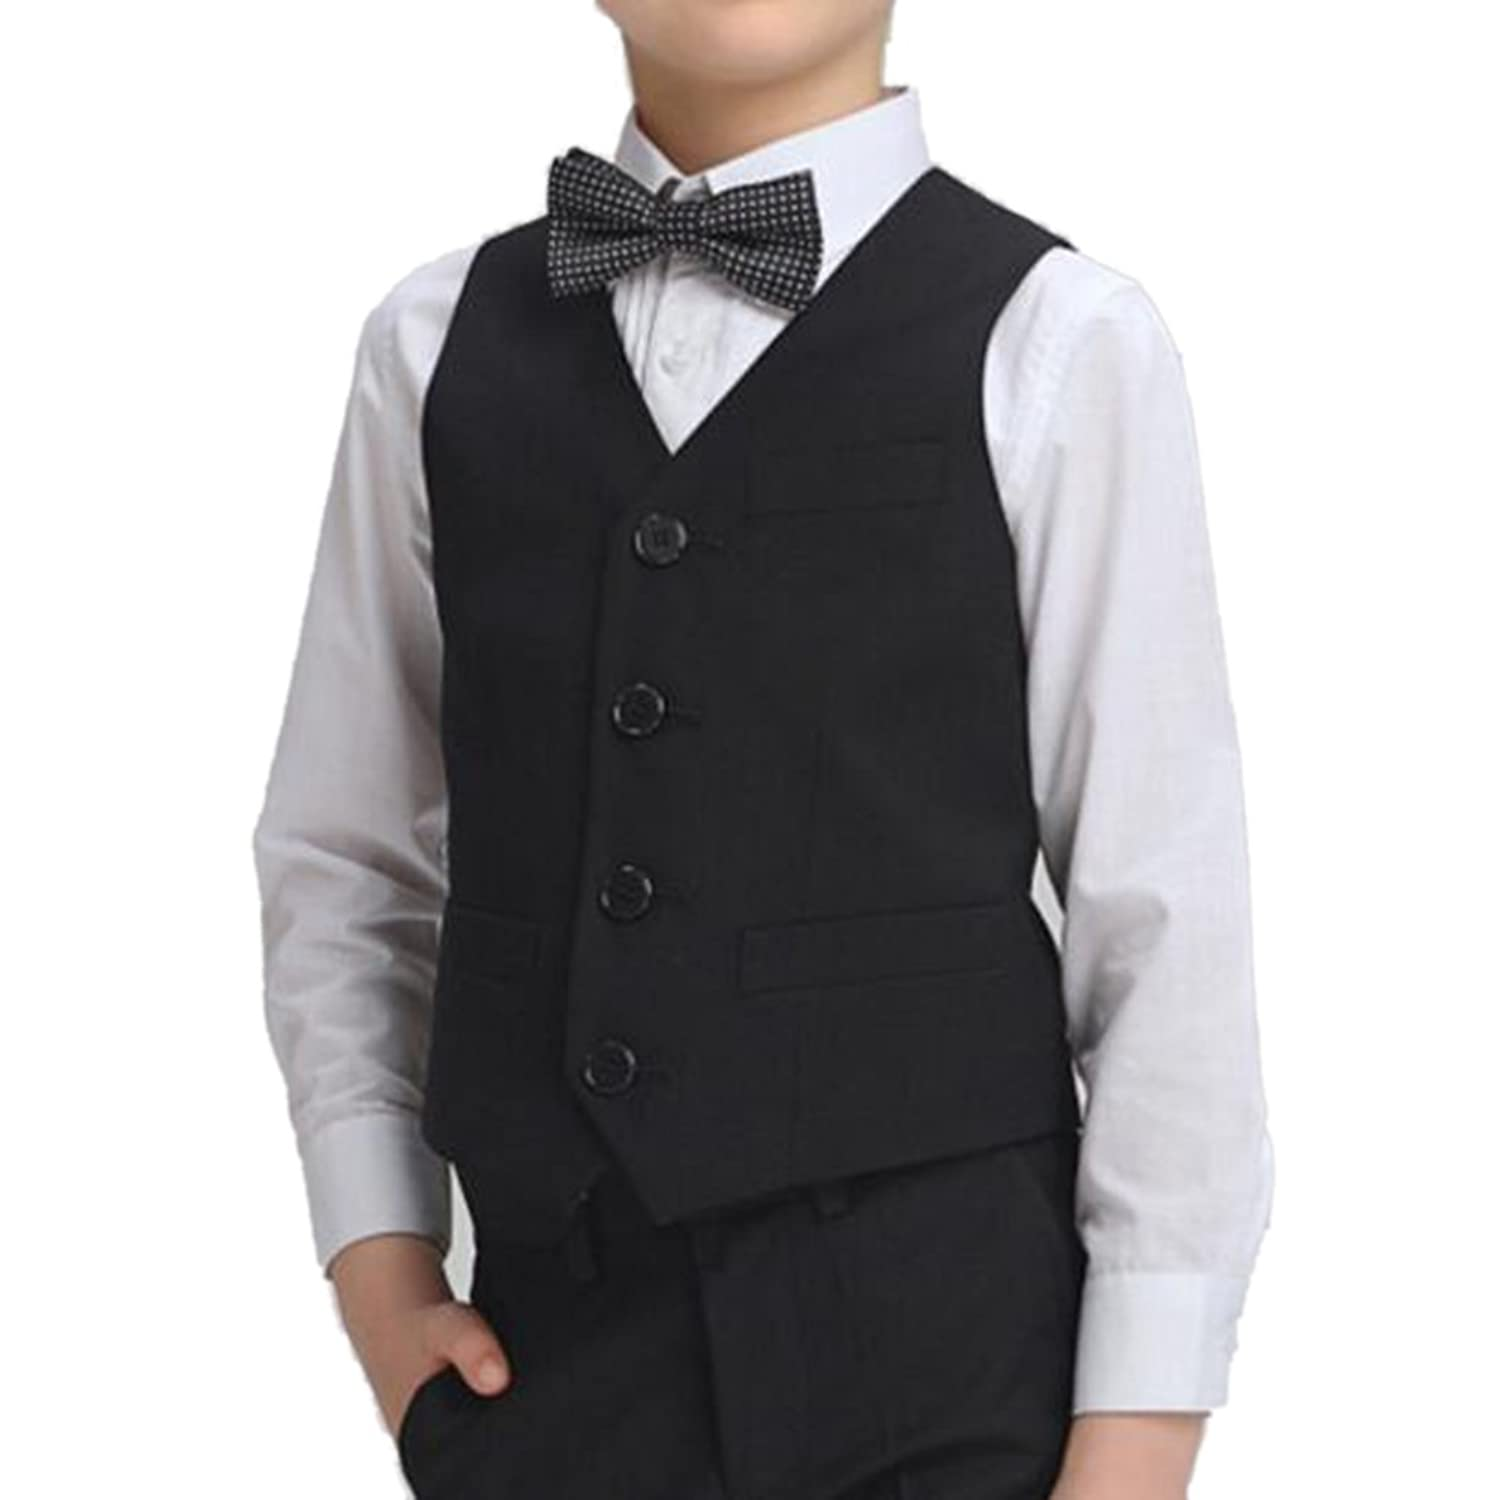 Amazon.com: TopTie Boy's 4 Button Formal Suit Tuxedo Vest: Clothing